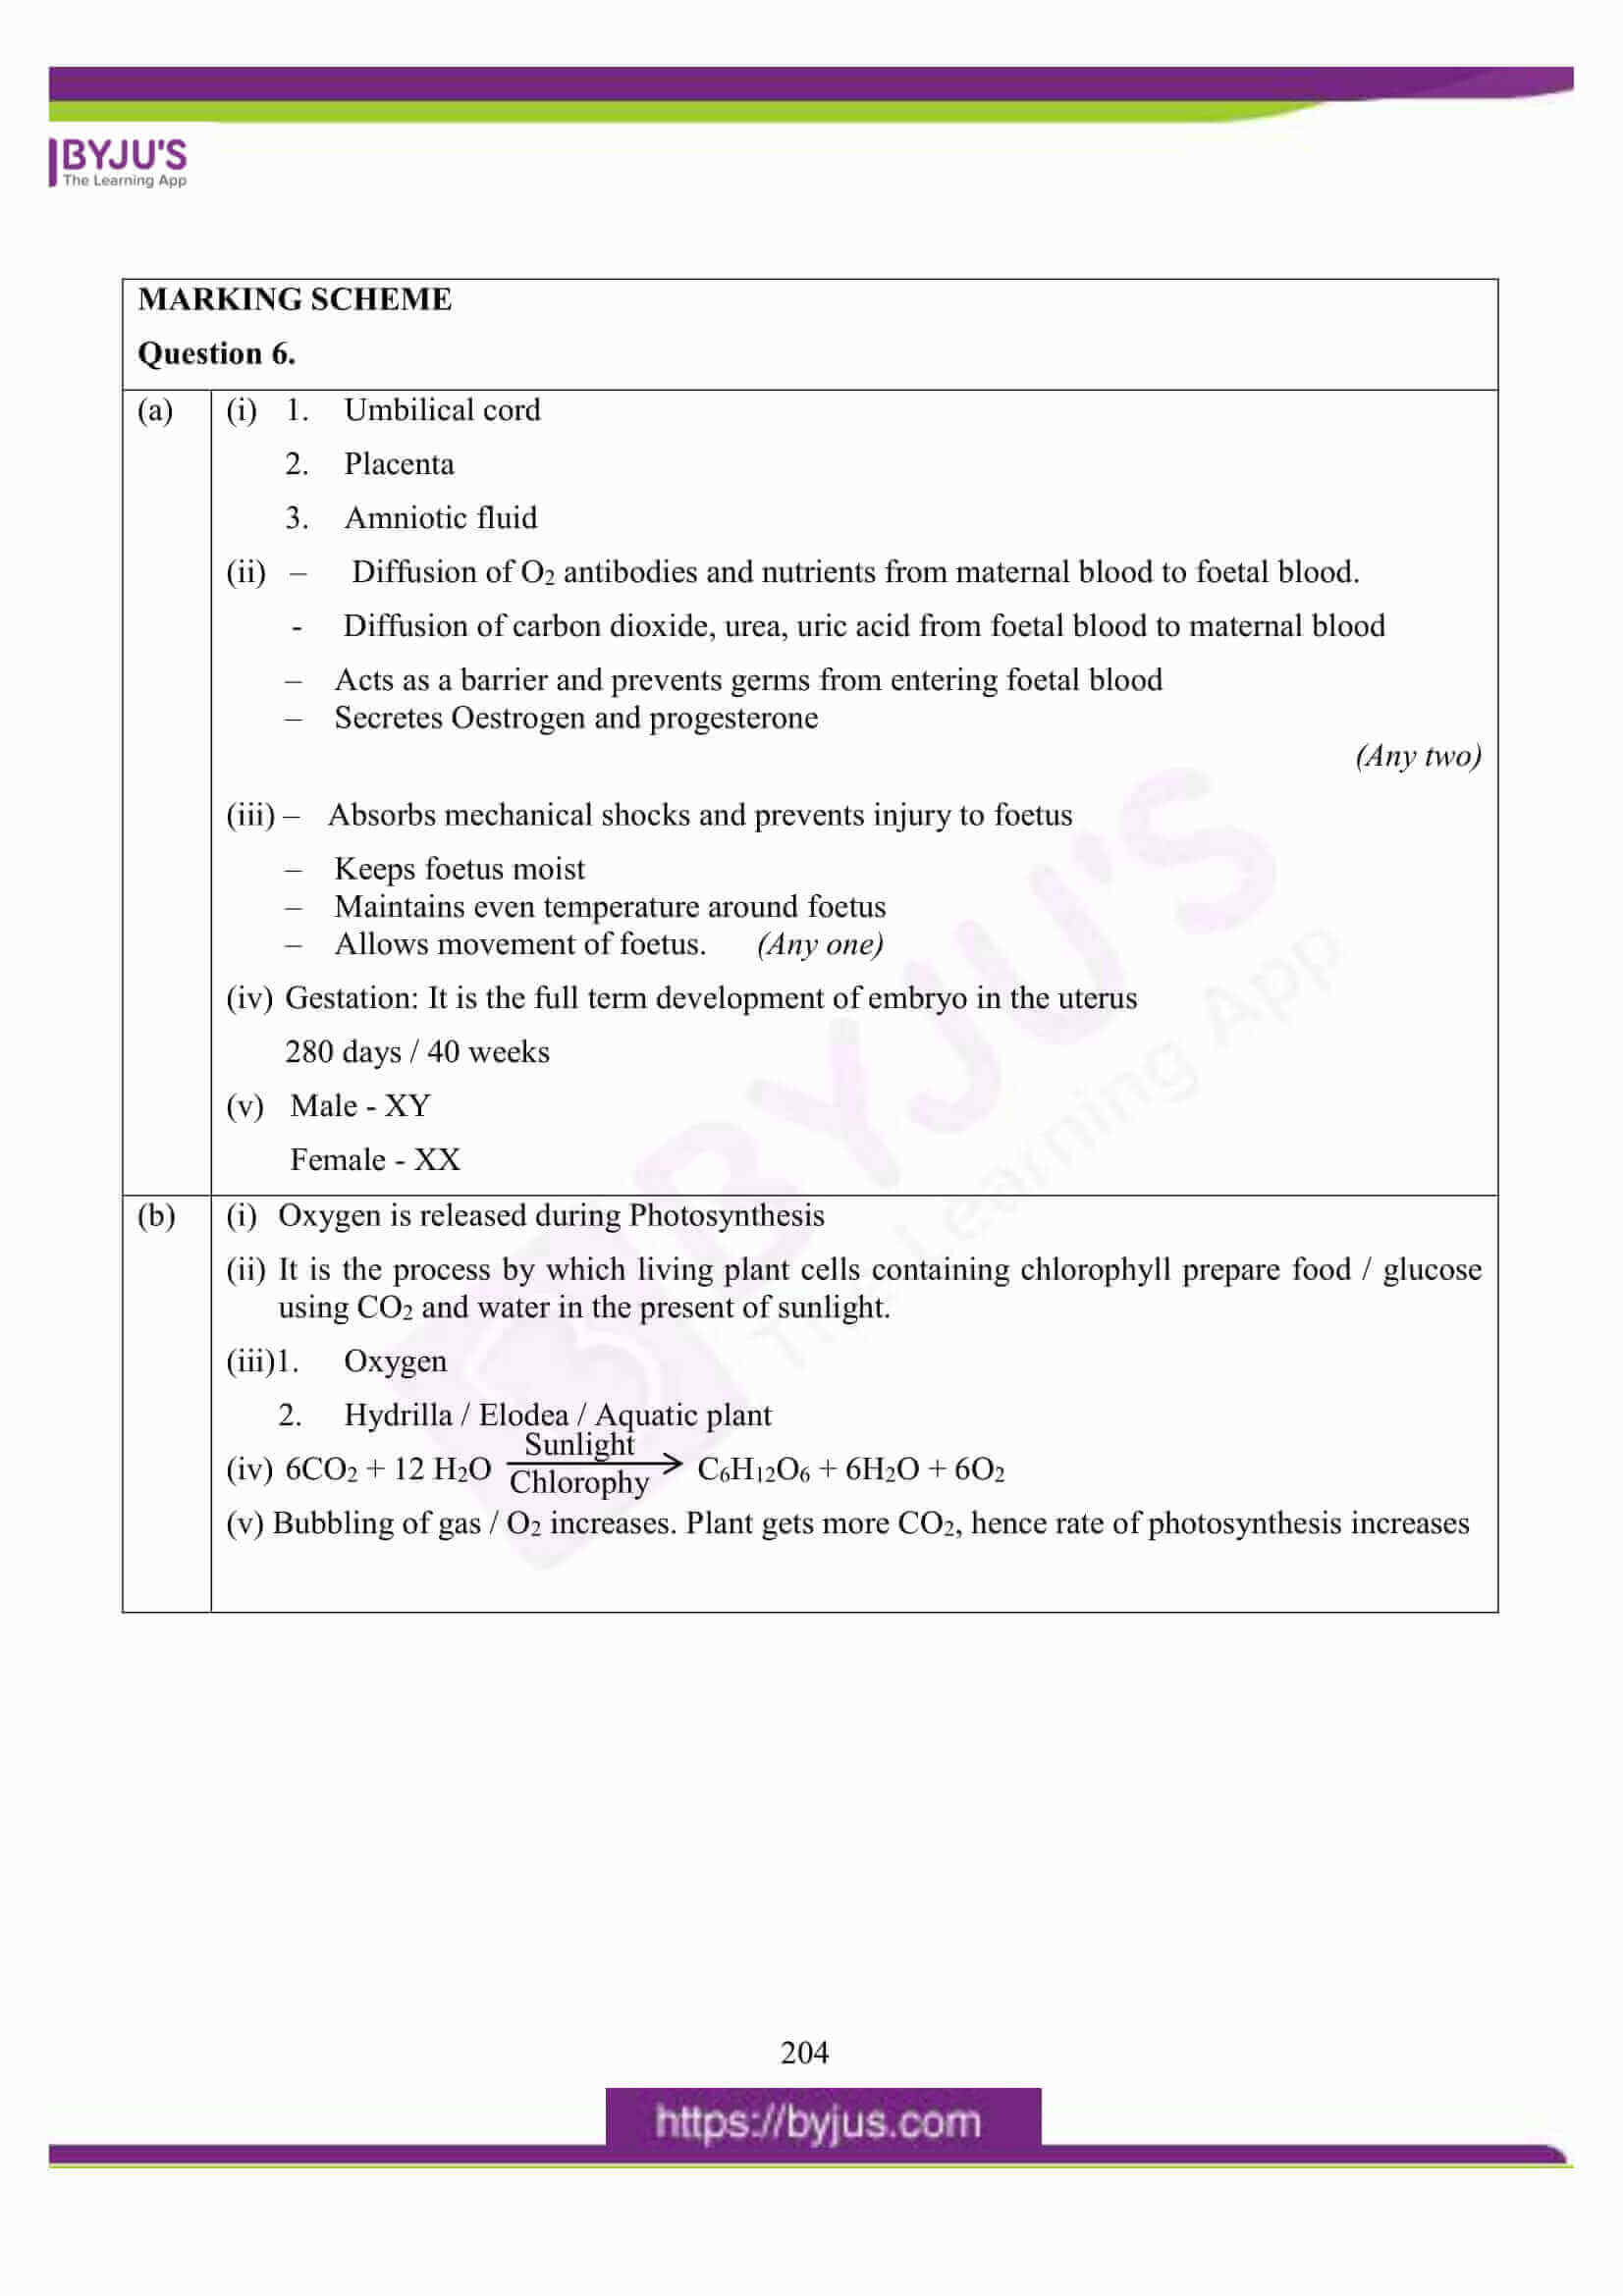 icse class 10 biology question paper solution 2016 22